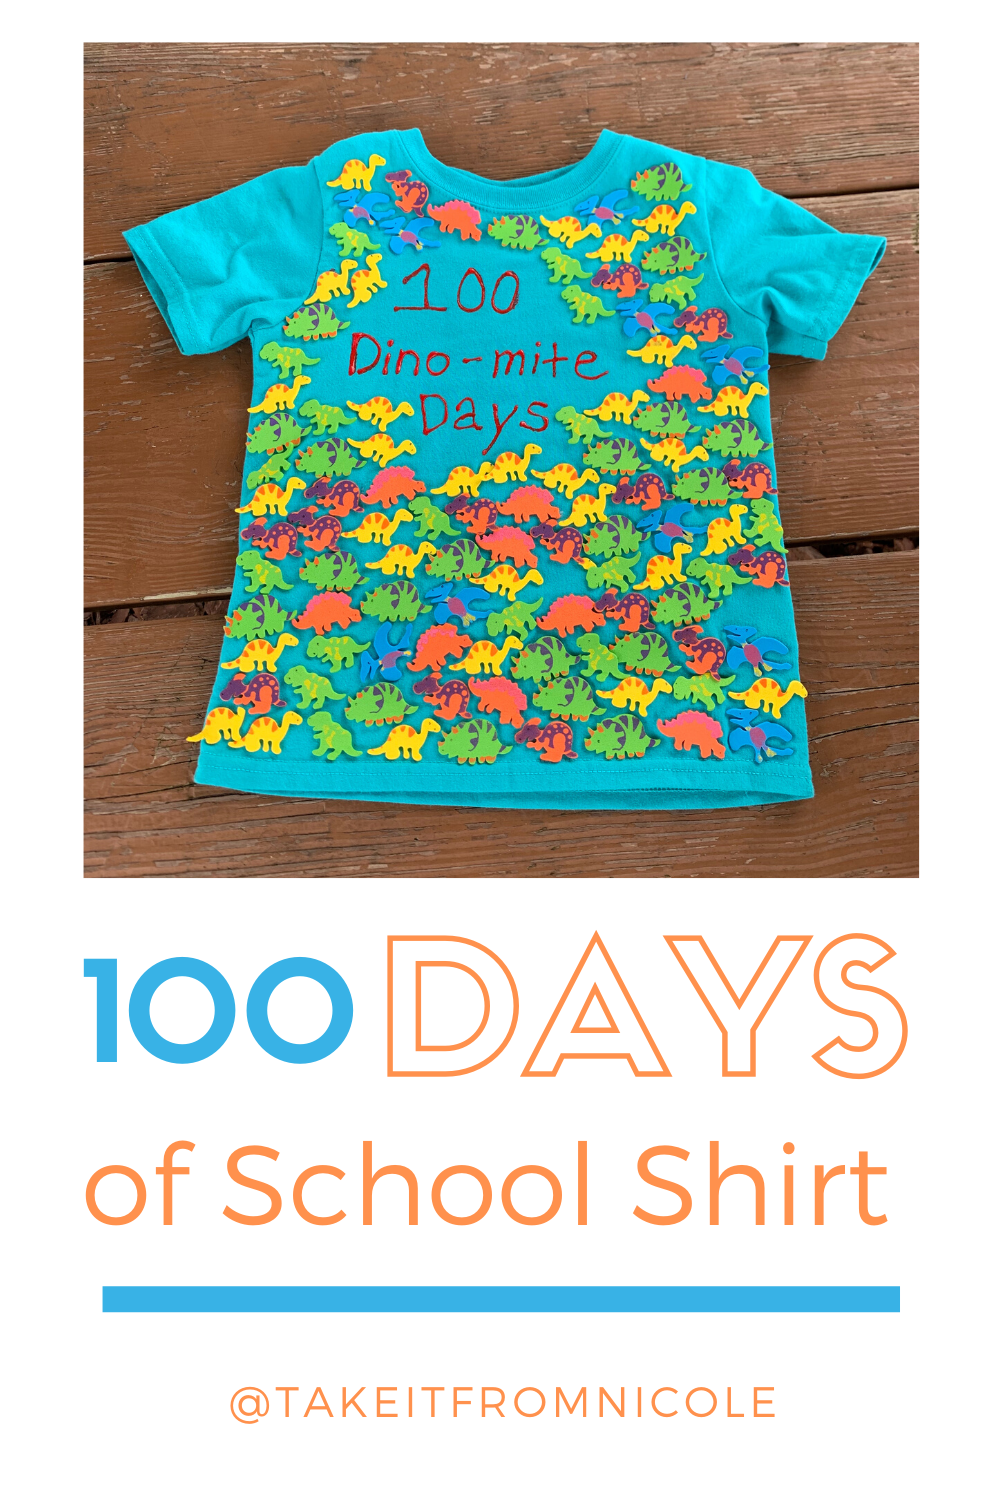 100 Dino-mite Days of School!